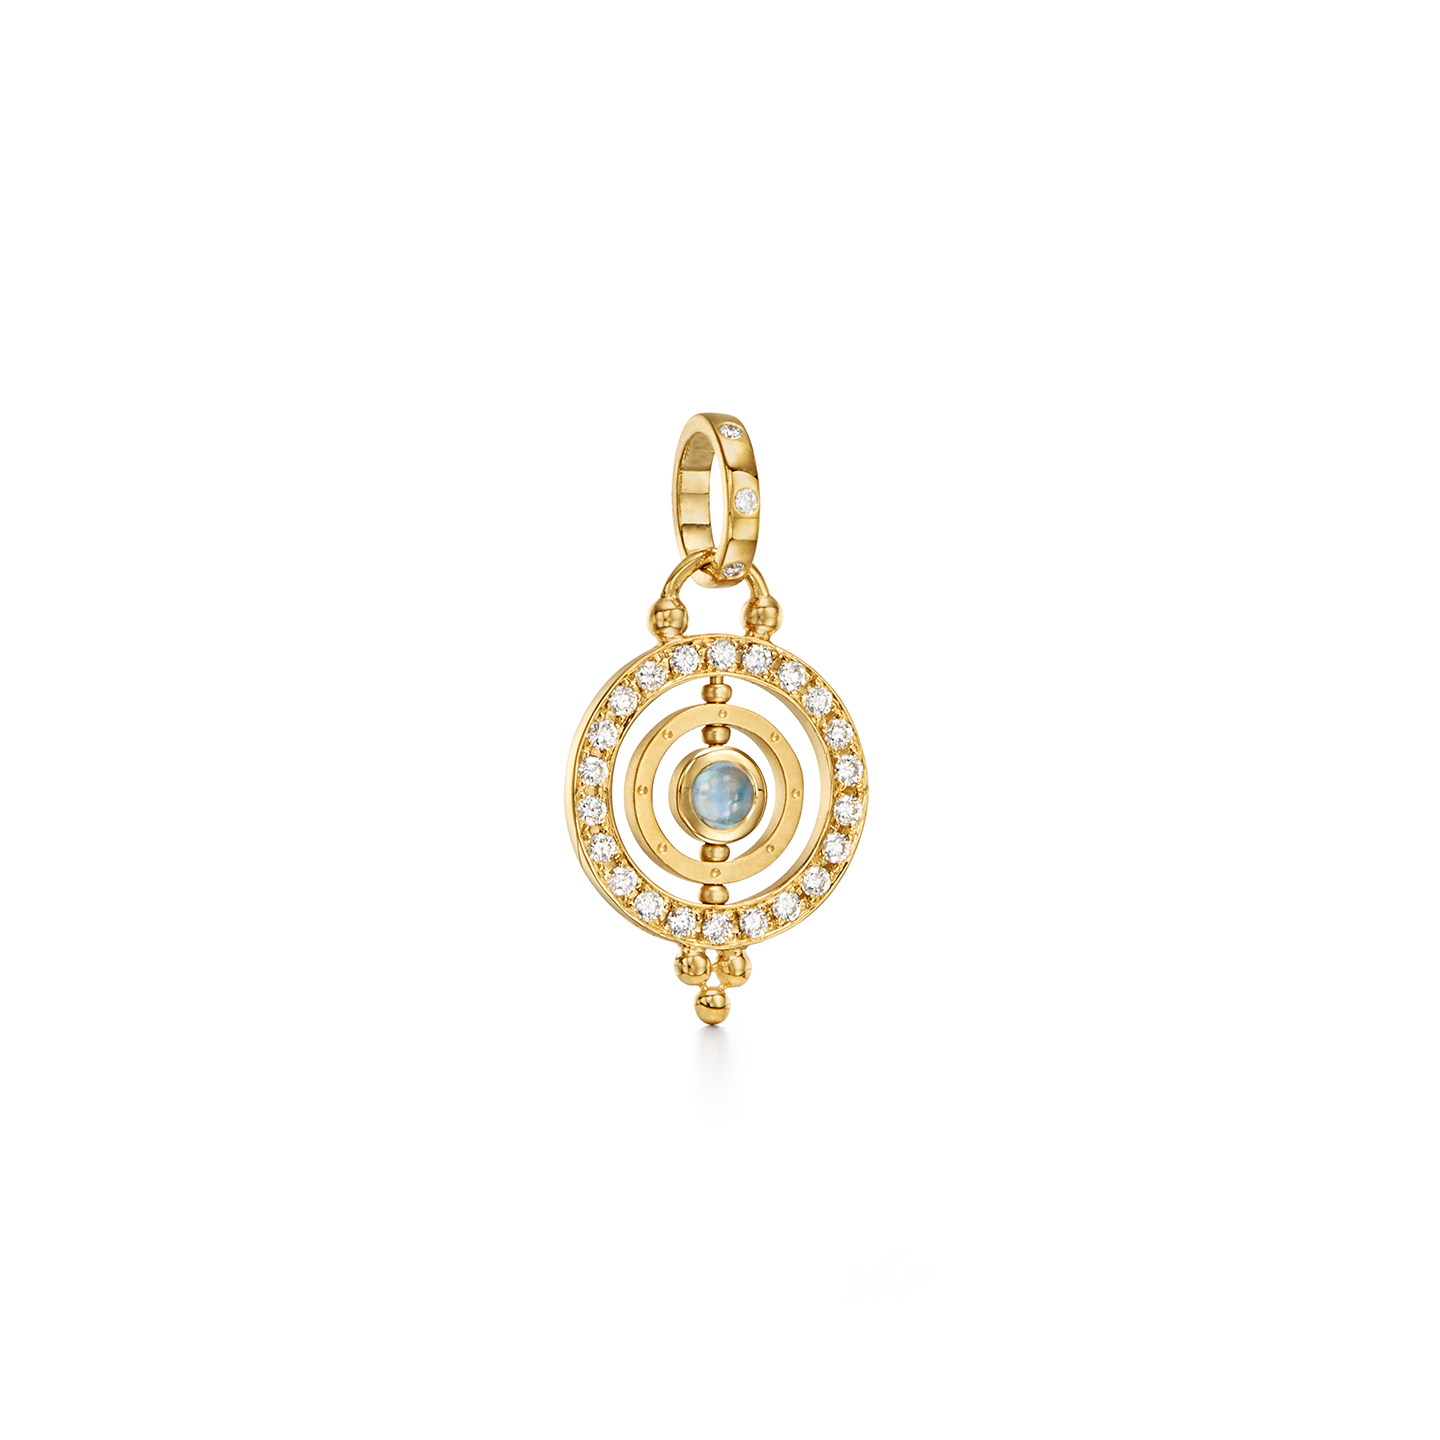 Temple St. Clair 18k Yellow Gold .37cts  Diamonds Gold Pendants / Charms P41474-XSTOLBM